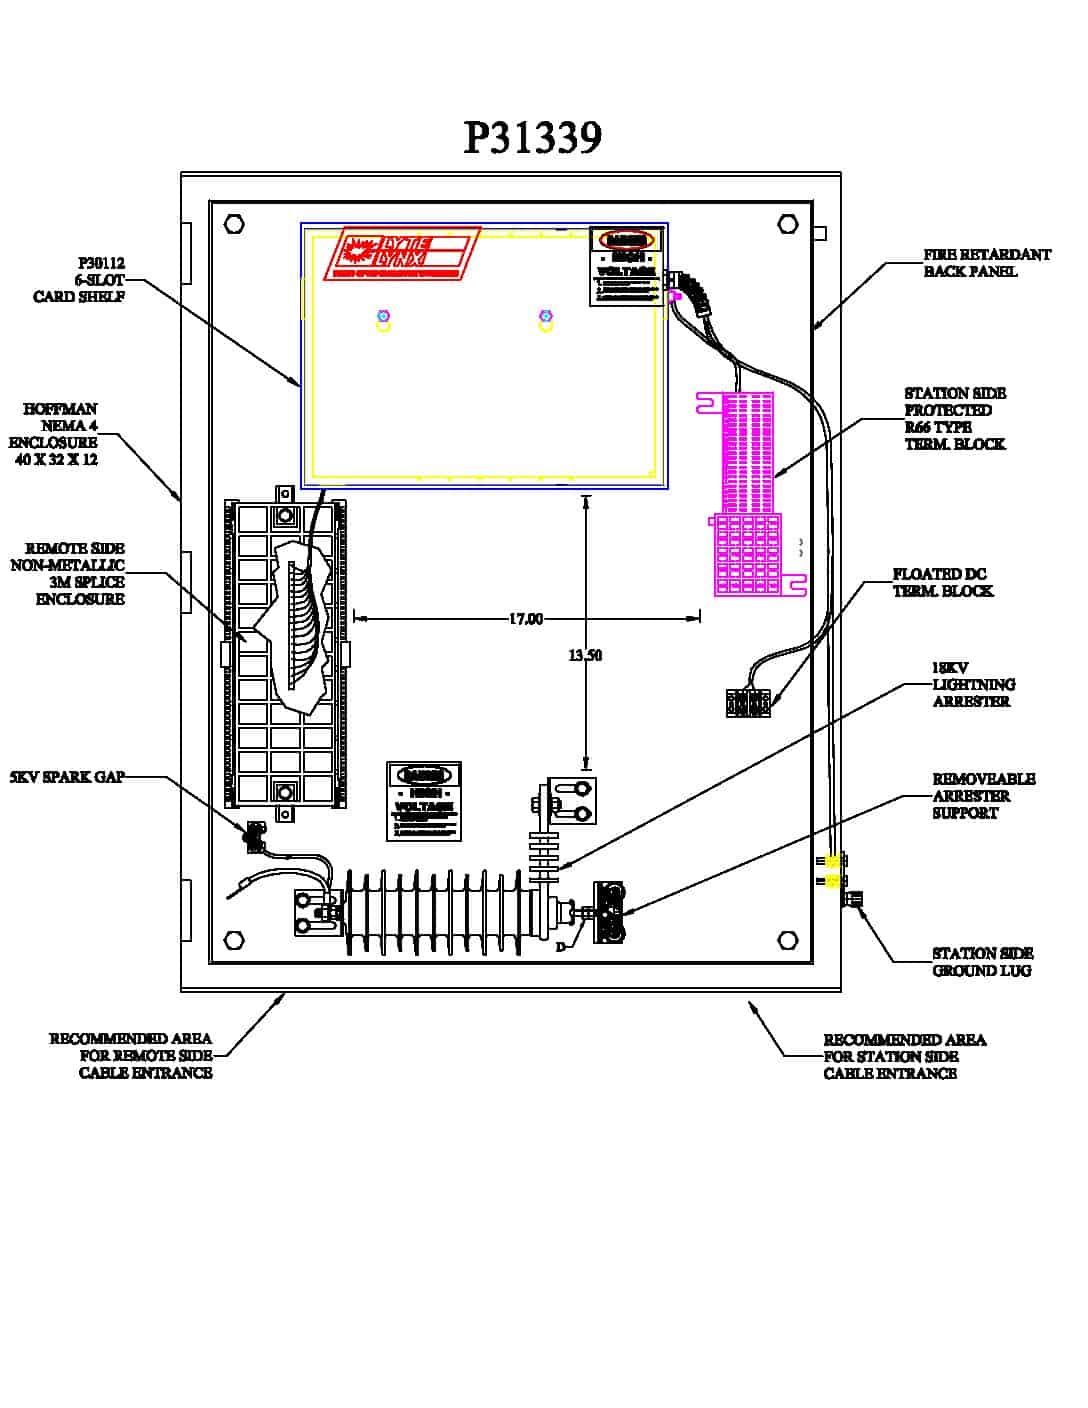 P31339 Turnkey Protection Packages - 6 slot PDF thumbnail